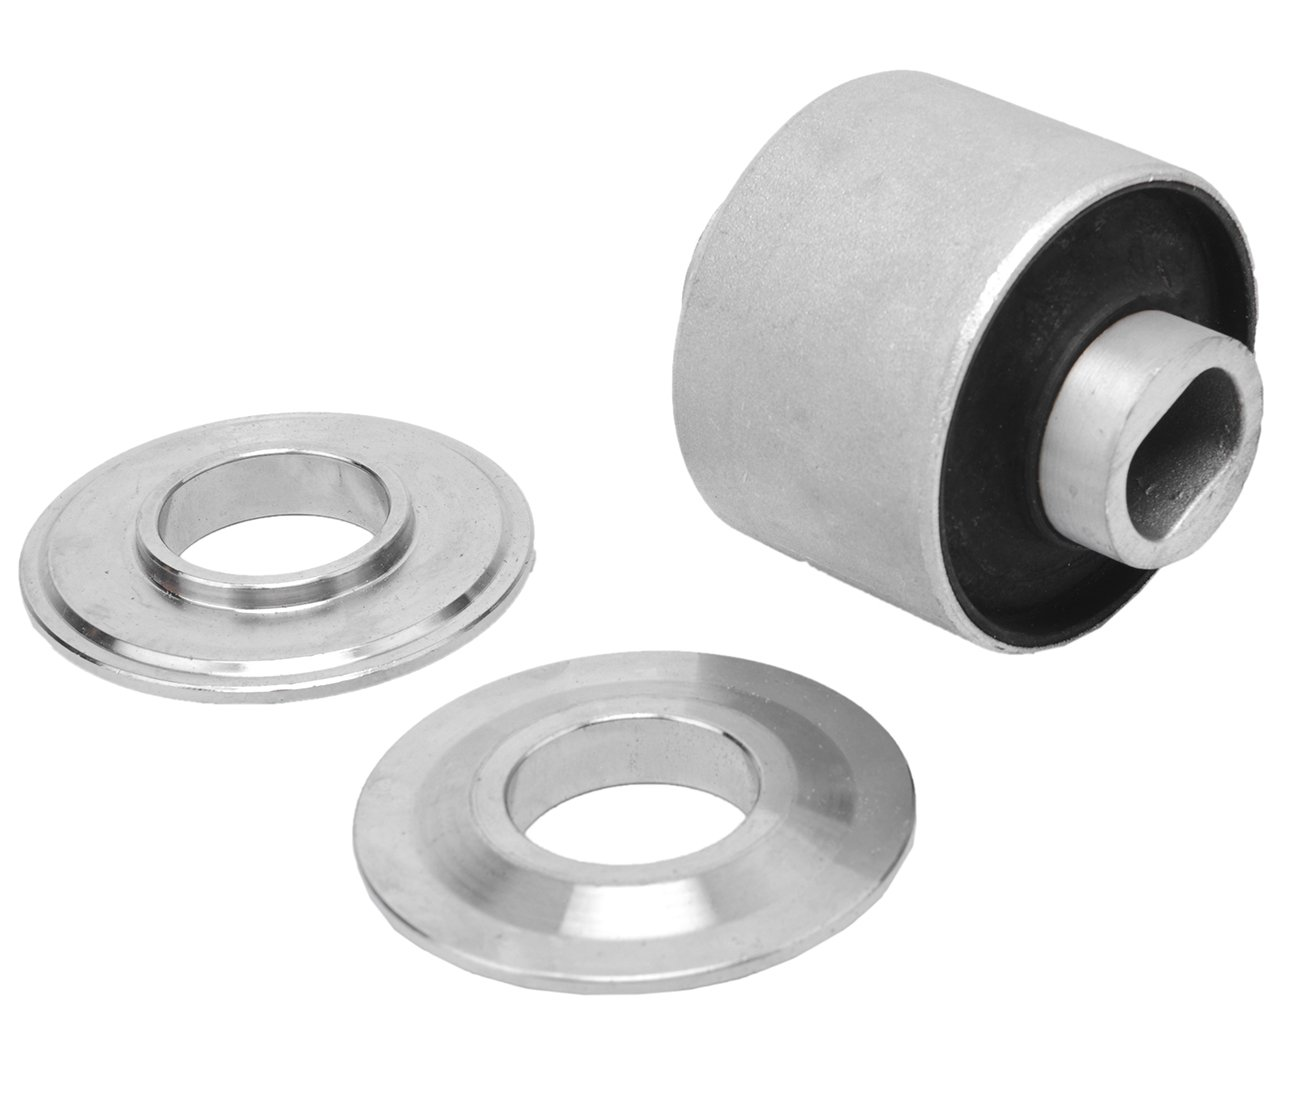 amazon com bapmic 2203309107 front lower control arm bushing kitamazon com bapmic 2203309107 front lower control arm bushing kit for mercedes benz w220 c215 (pack of 2) automotive